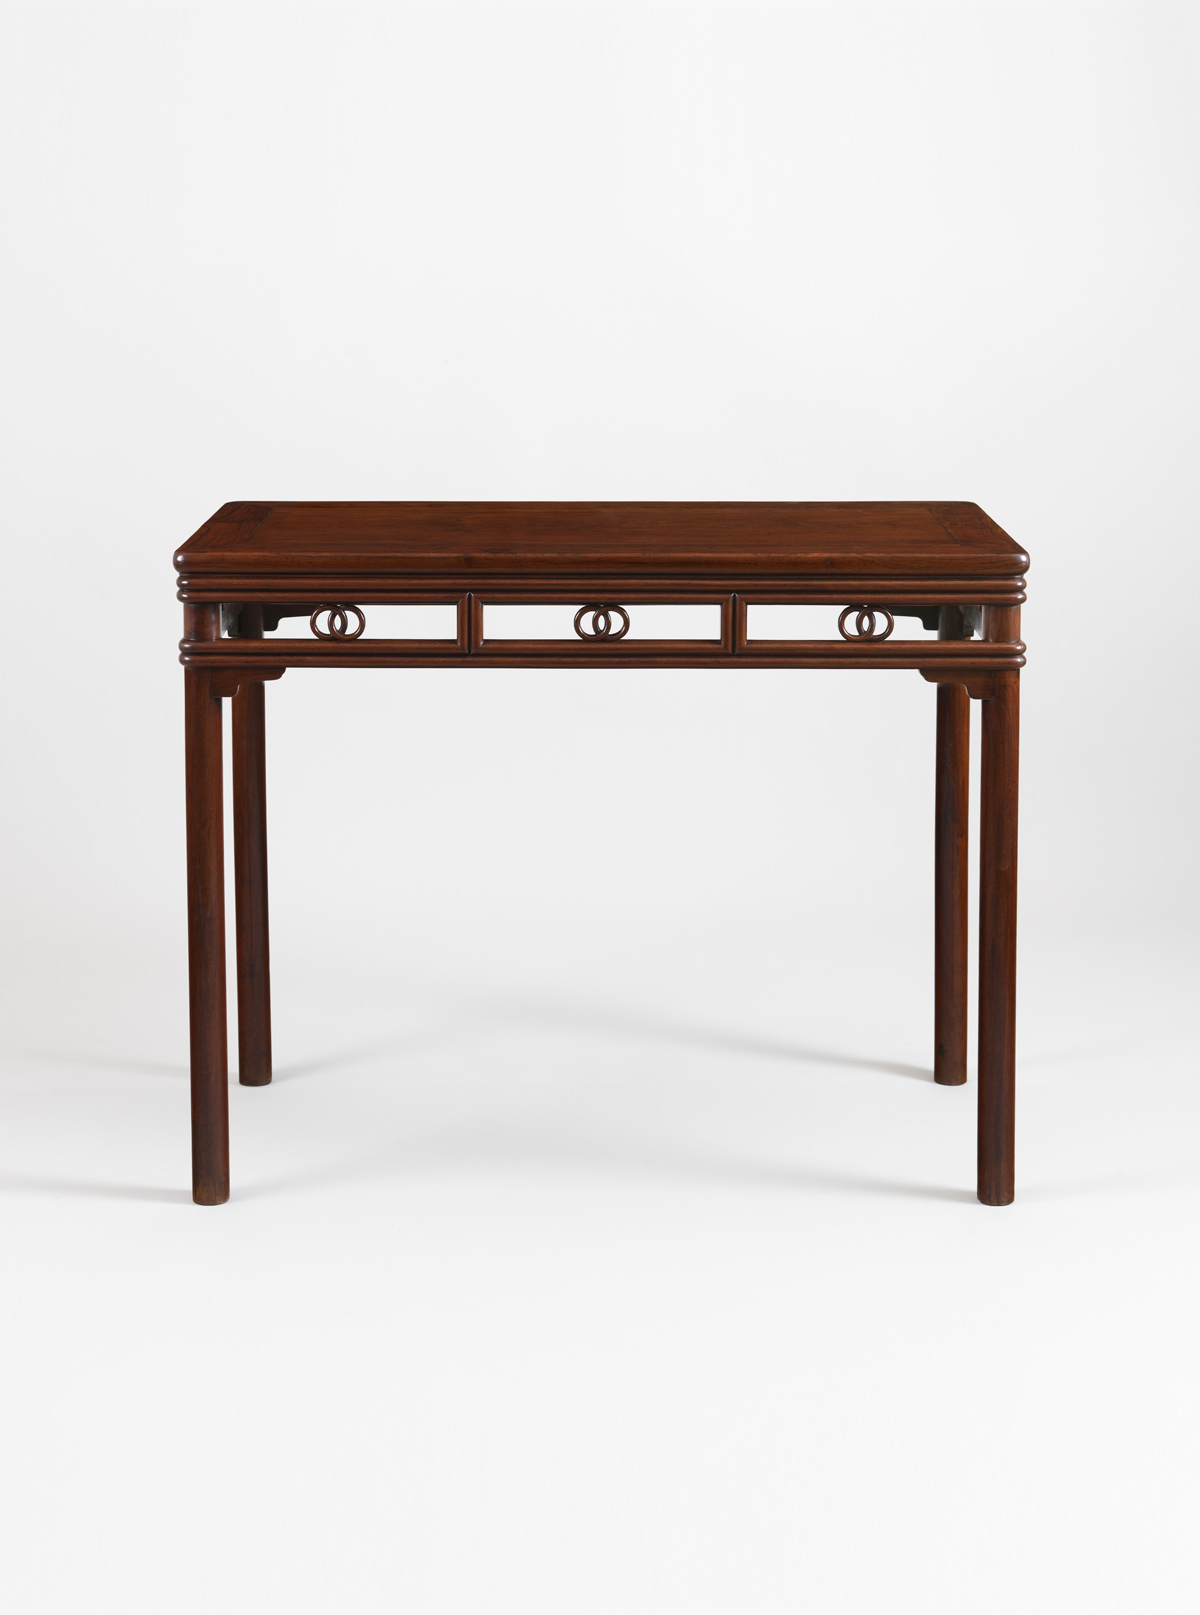 Pair of Huanghuali Side Tables, banzhuo